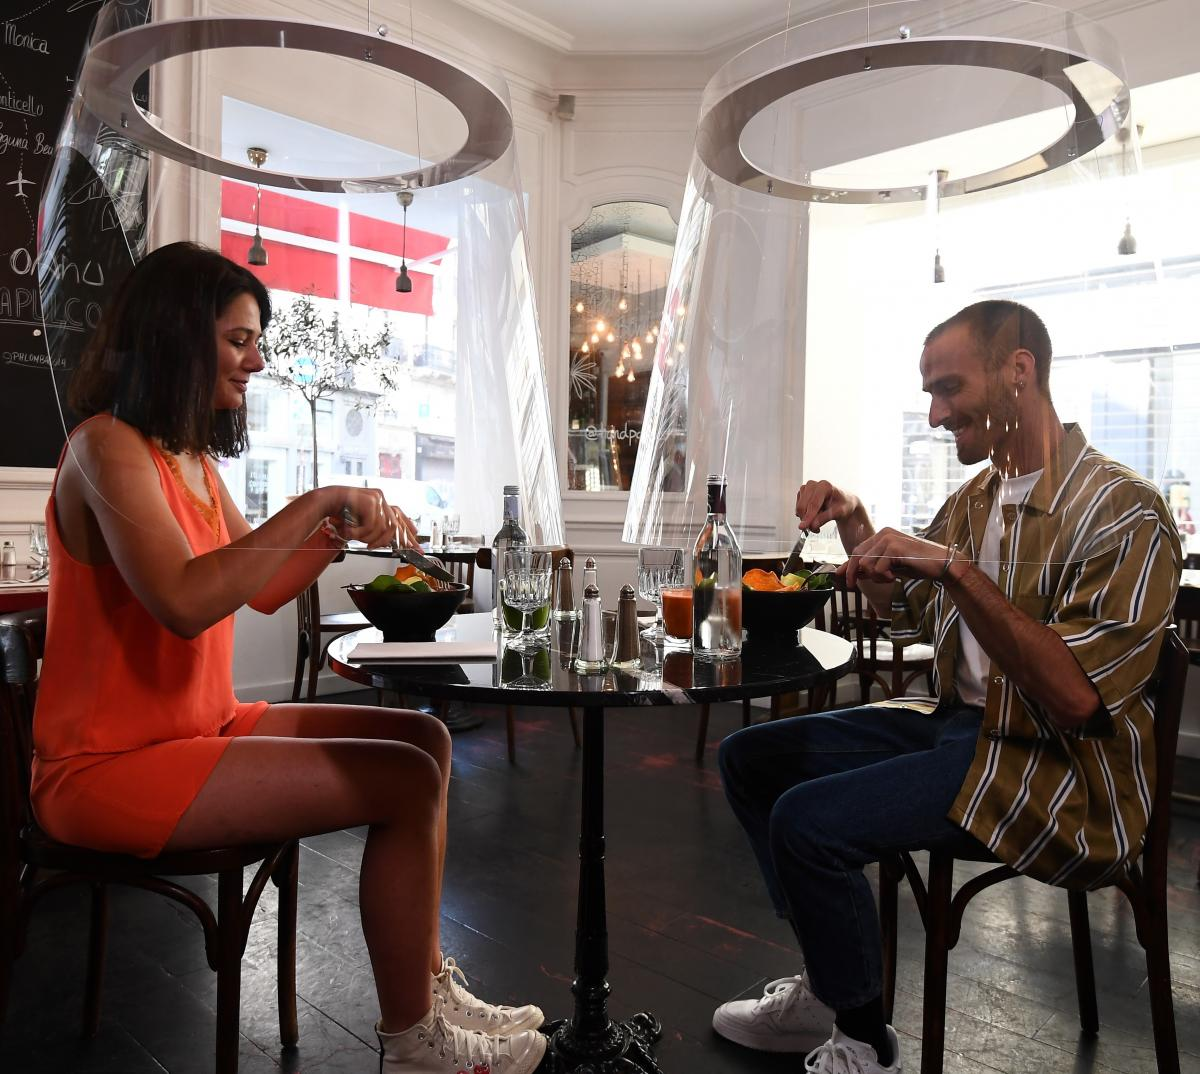 A couple has lunch under plexiglass protection designed by Christophe Gernigon at the H.A.N.D restaurant, on May 27, 2020, in Paris, as France eases lockdown measures taken to curb the spread of the COVID-19 pandemic.